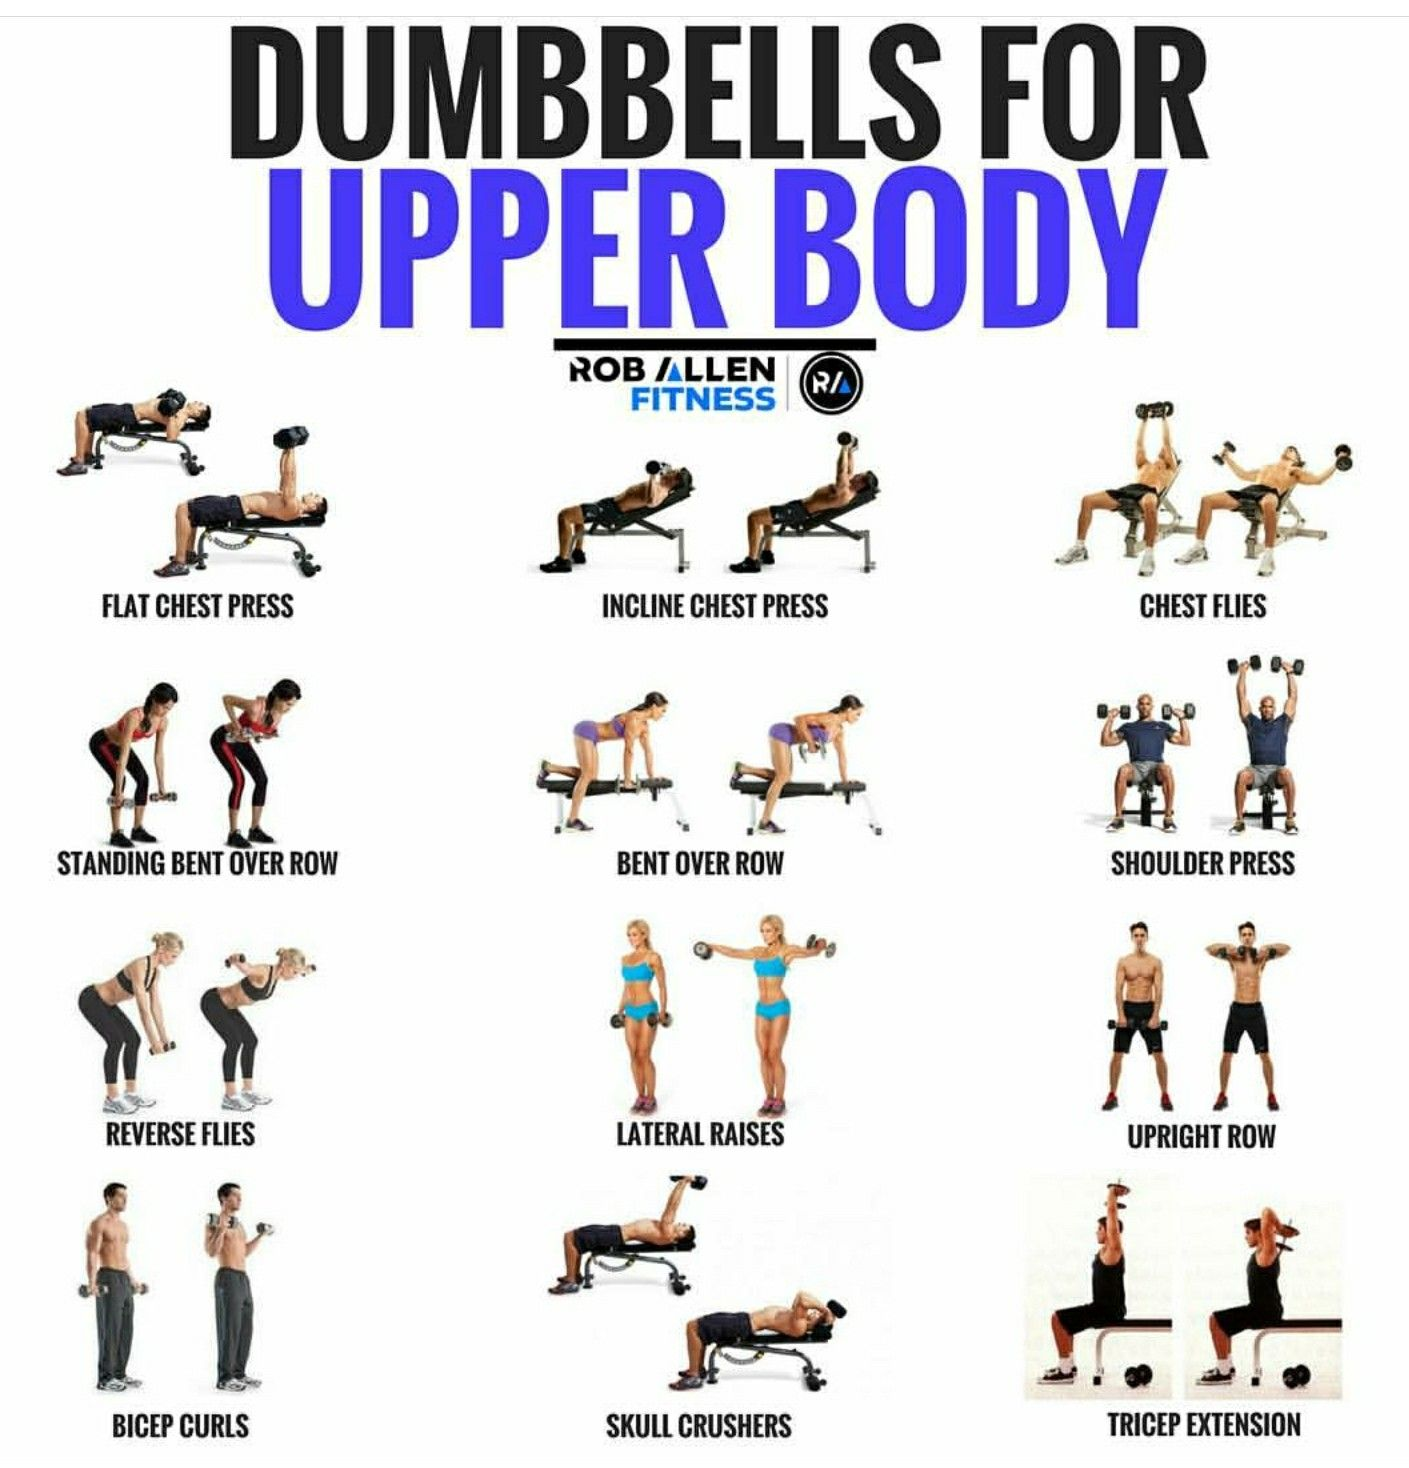 Upper Body Workout Body Workout At Home Upper Body Workout Dumbell Workout